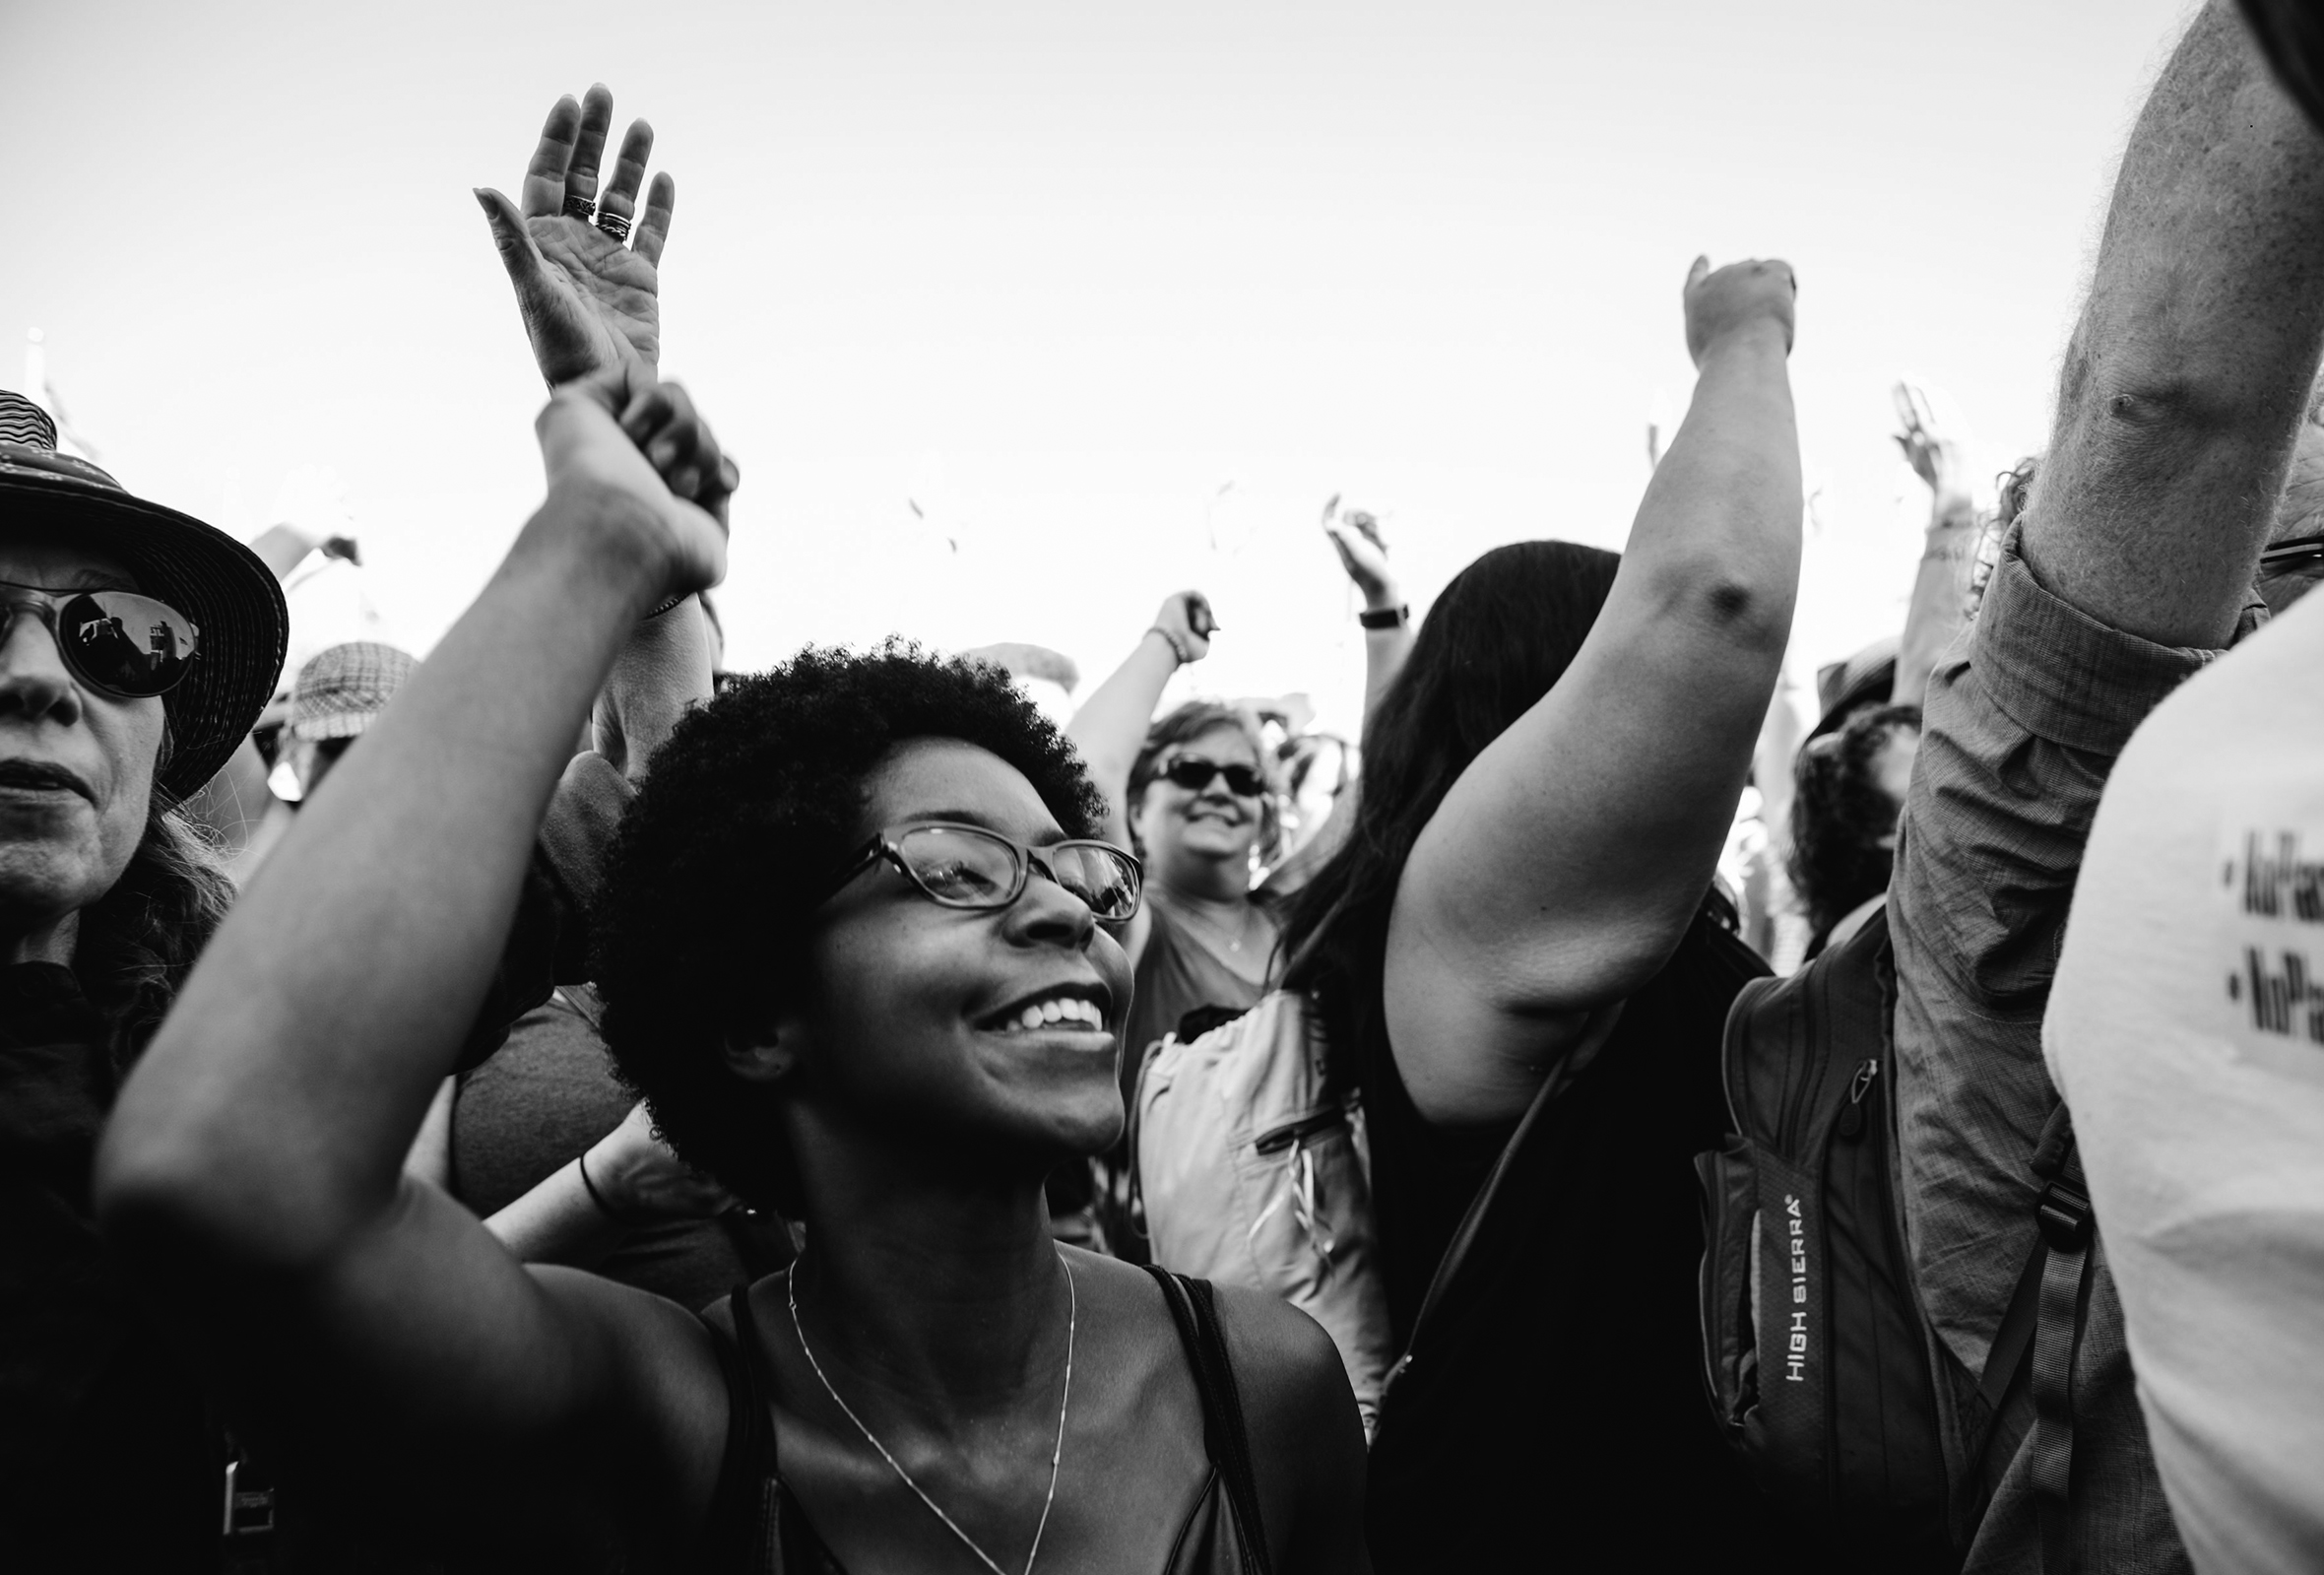 A Black woman, smiling, throwing her hand up in the air among a diverse crowd of protesters.